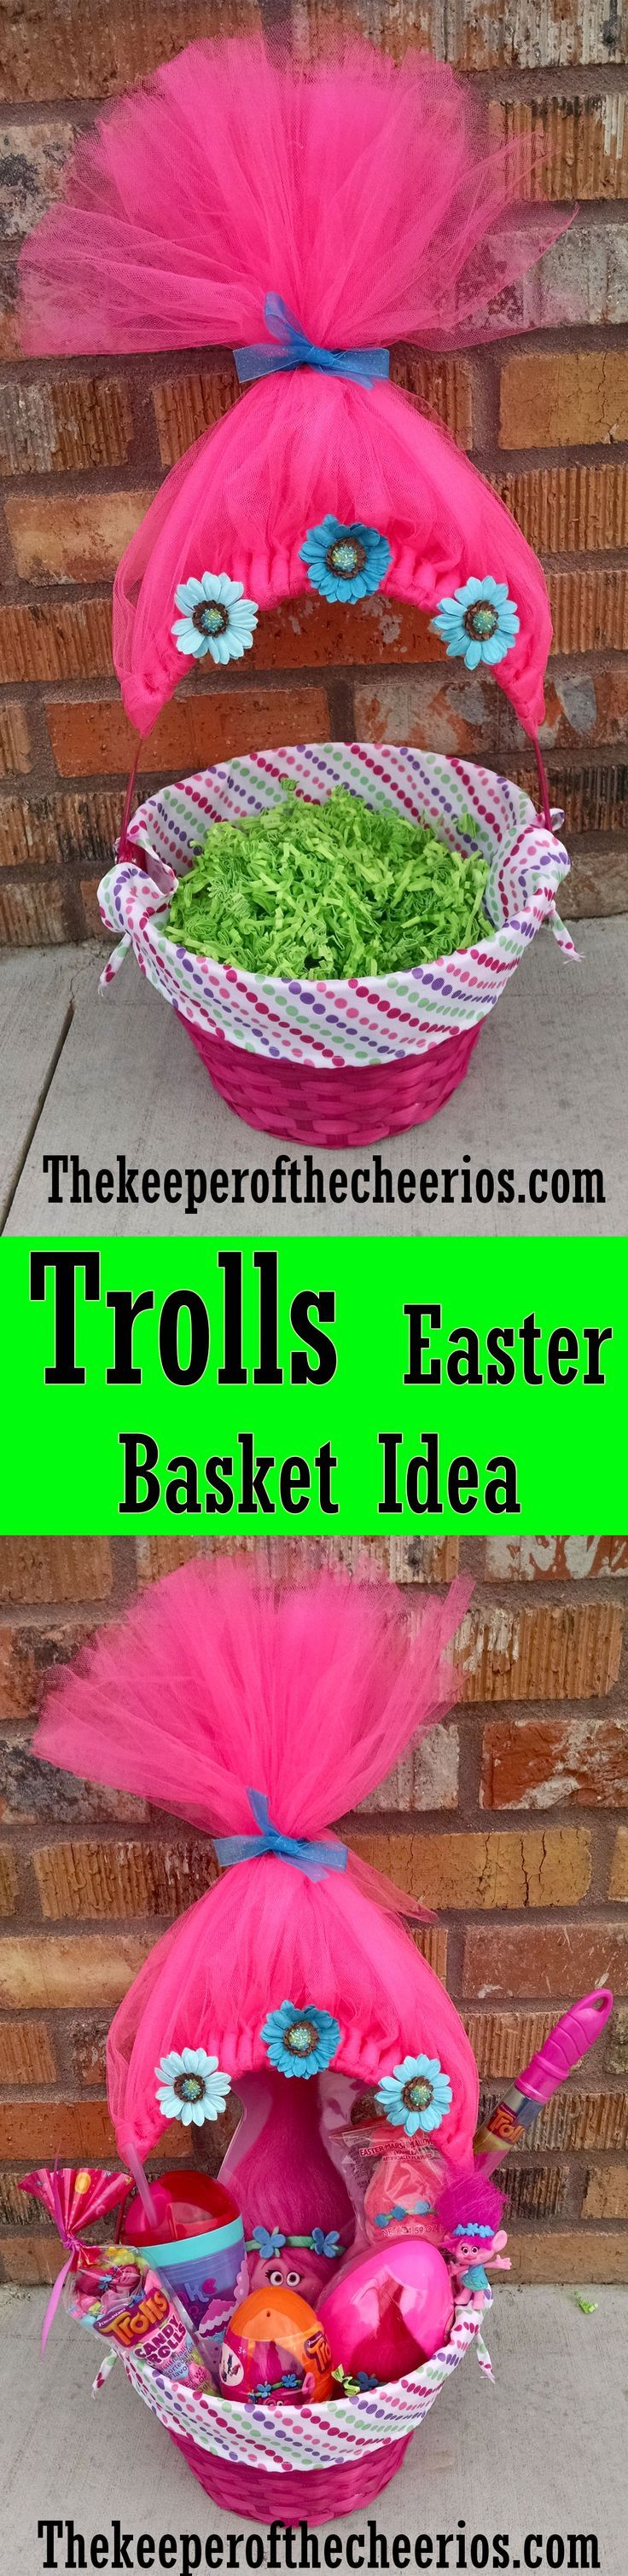 27 best creative easter basket ideas images on pinterest gift creative business professional resume template for ms word color design cv template design ins easter basket ideaseaster basketseaster negle Gallery